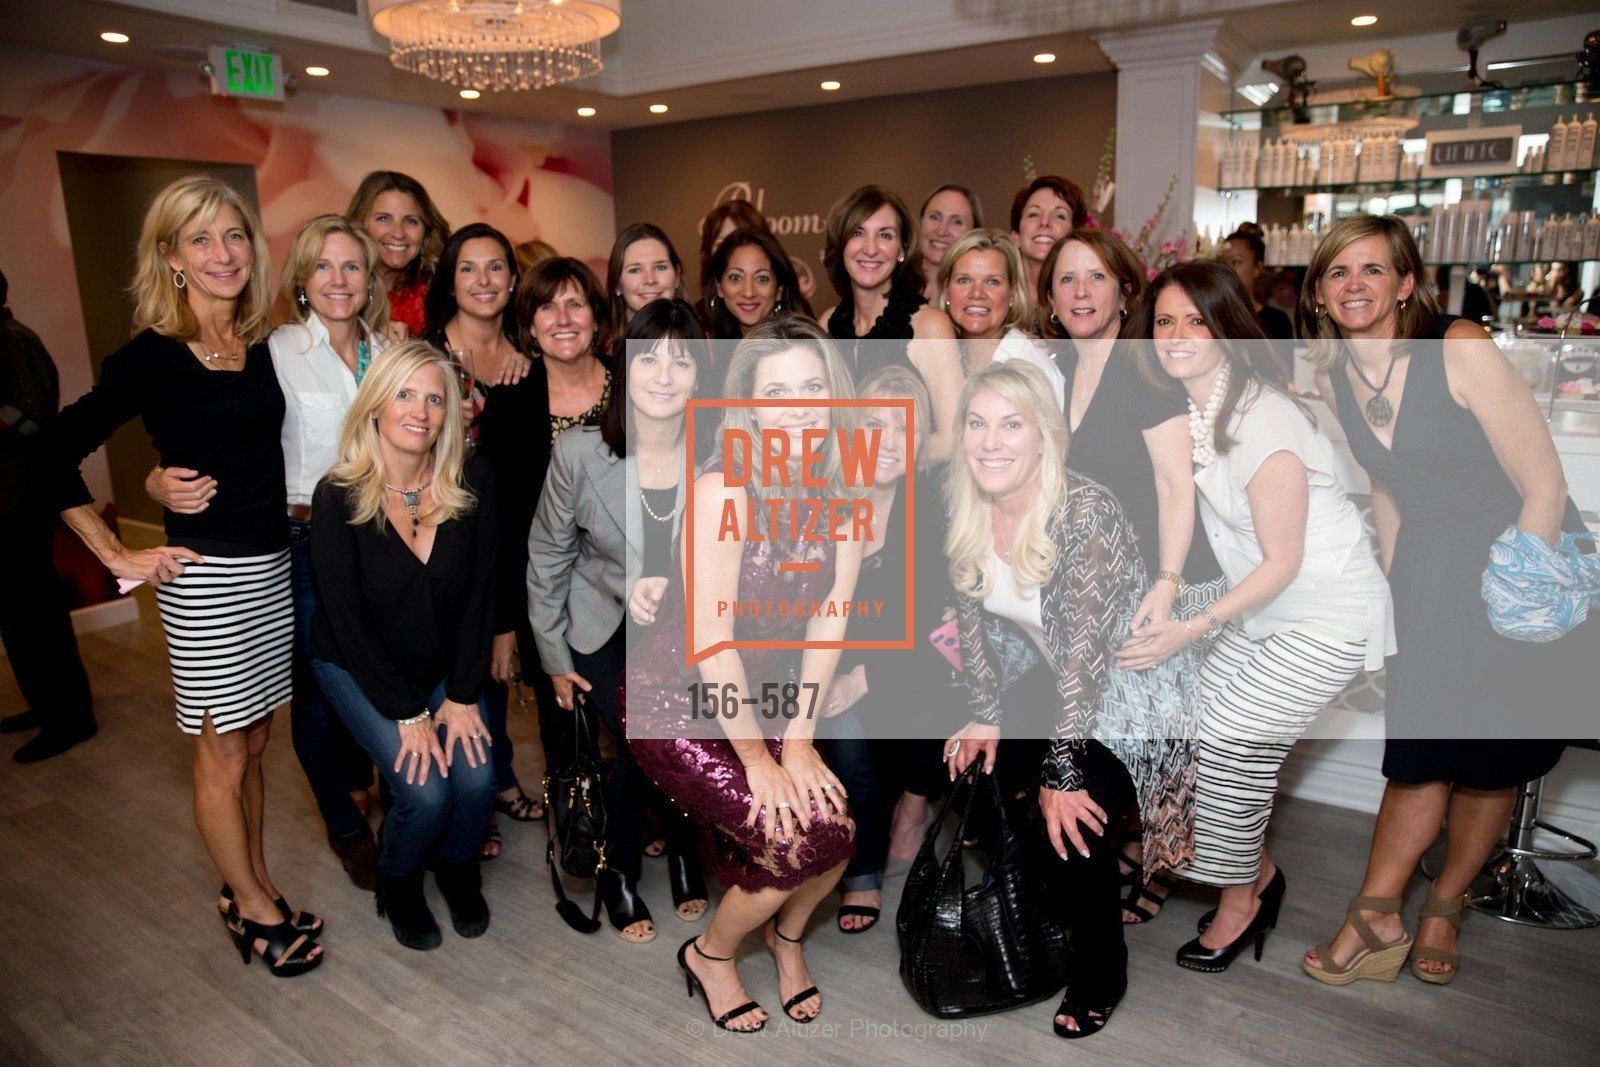 Bloom Group Shot, BLOOM BLOW DRY BAR Grand Opening Party, US, October 2nd, 2014,Drew Altizer, Drew Altizer Photography, full-service agency, private events, San Francisco photographer, photographer california